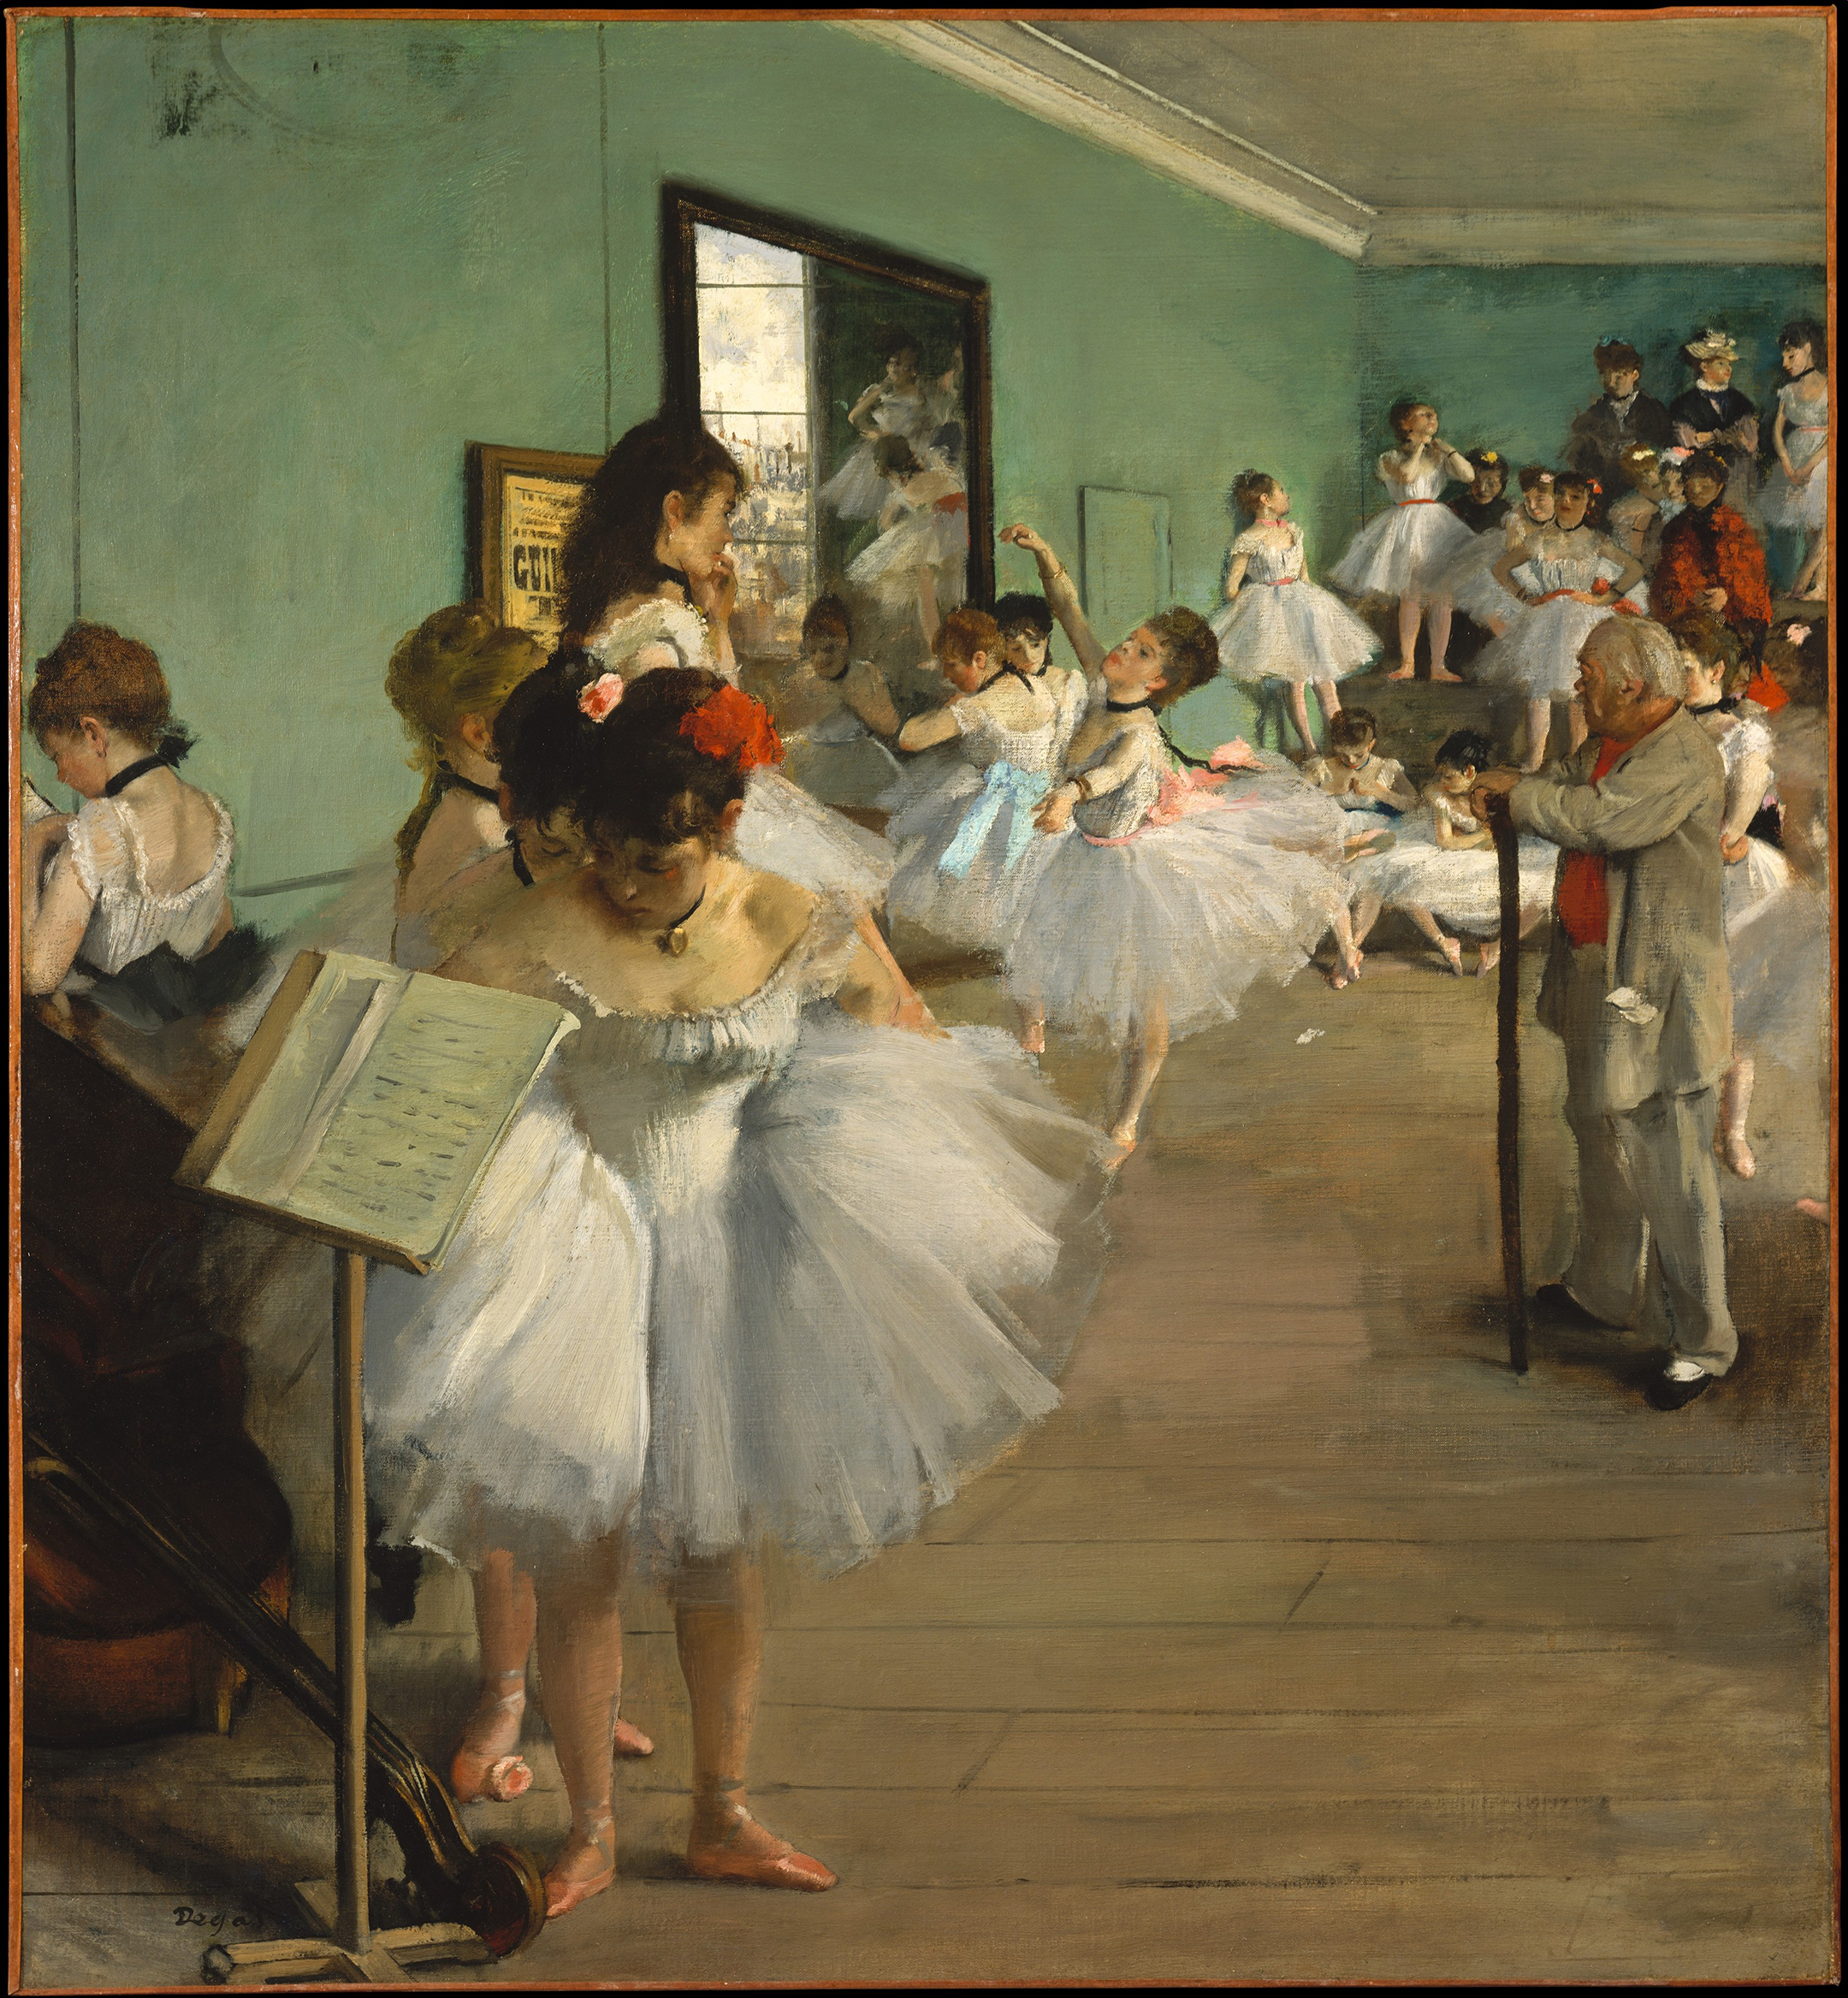 An Impressionist painting by Degas of young women dancers practicing in a studio